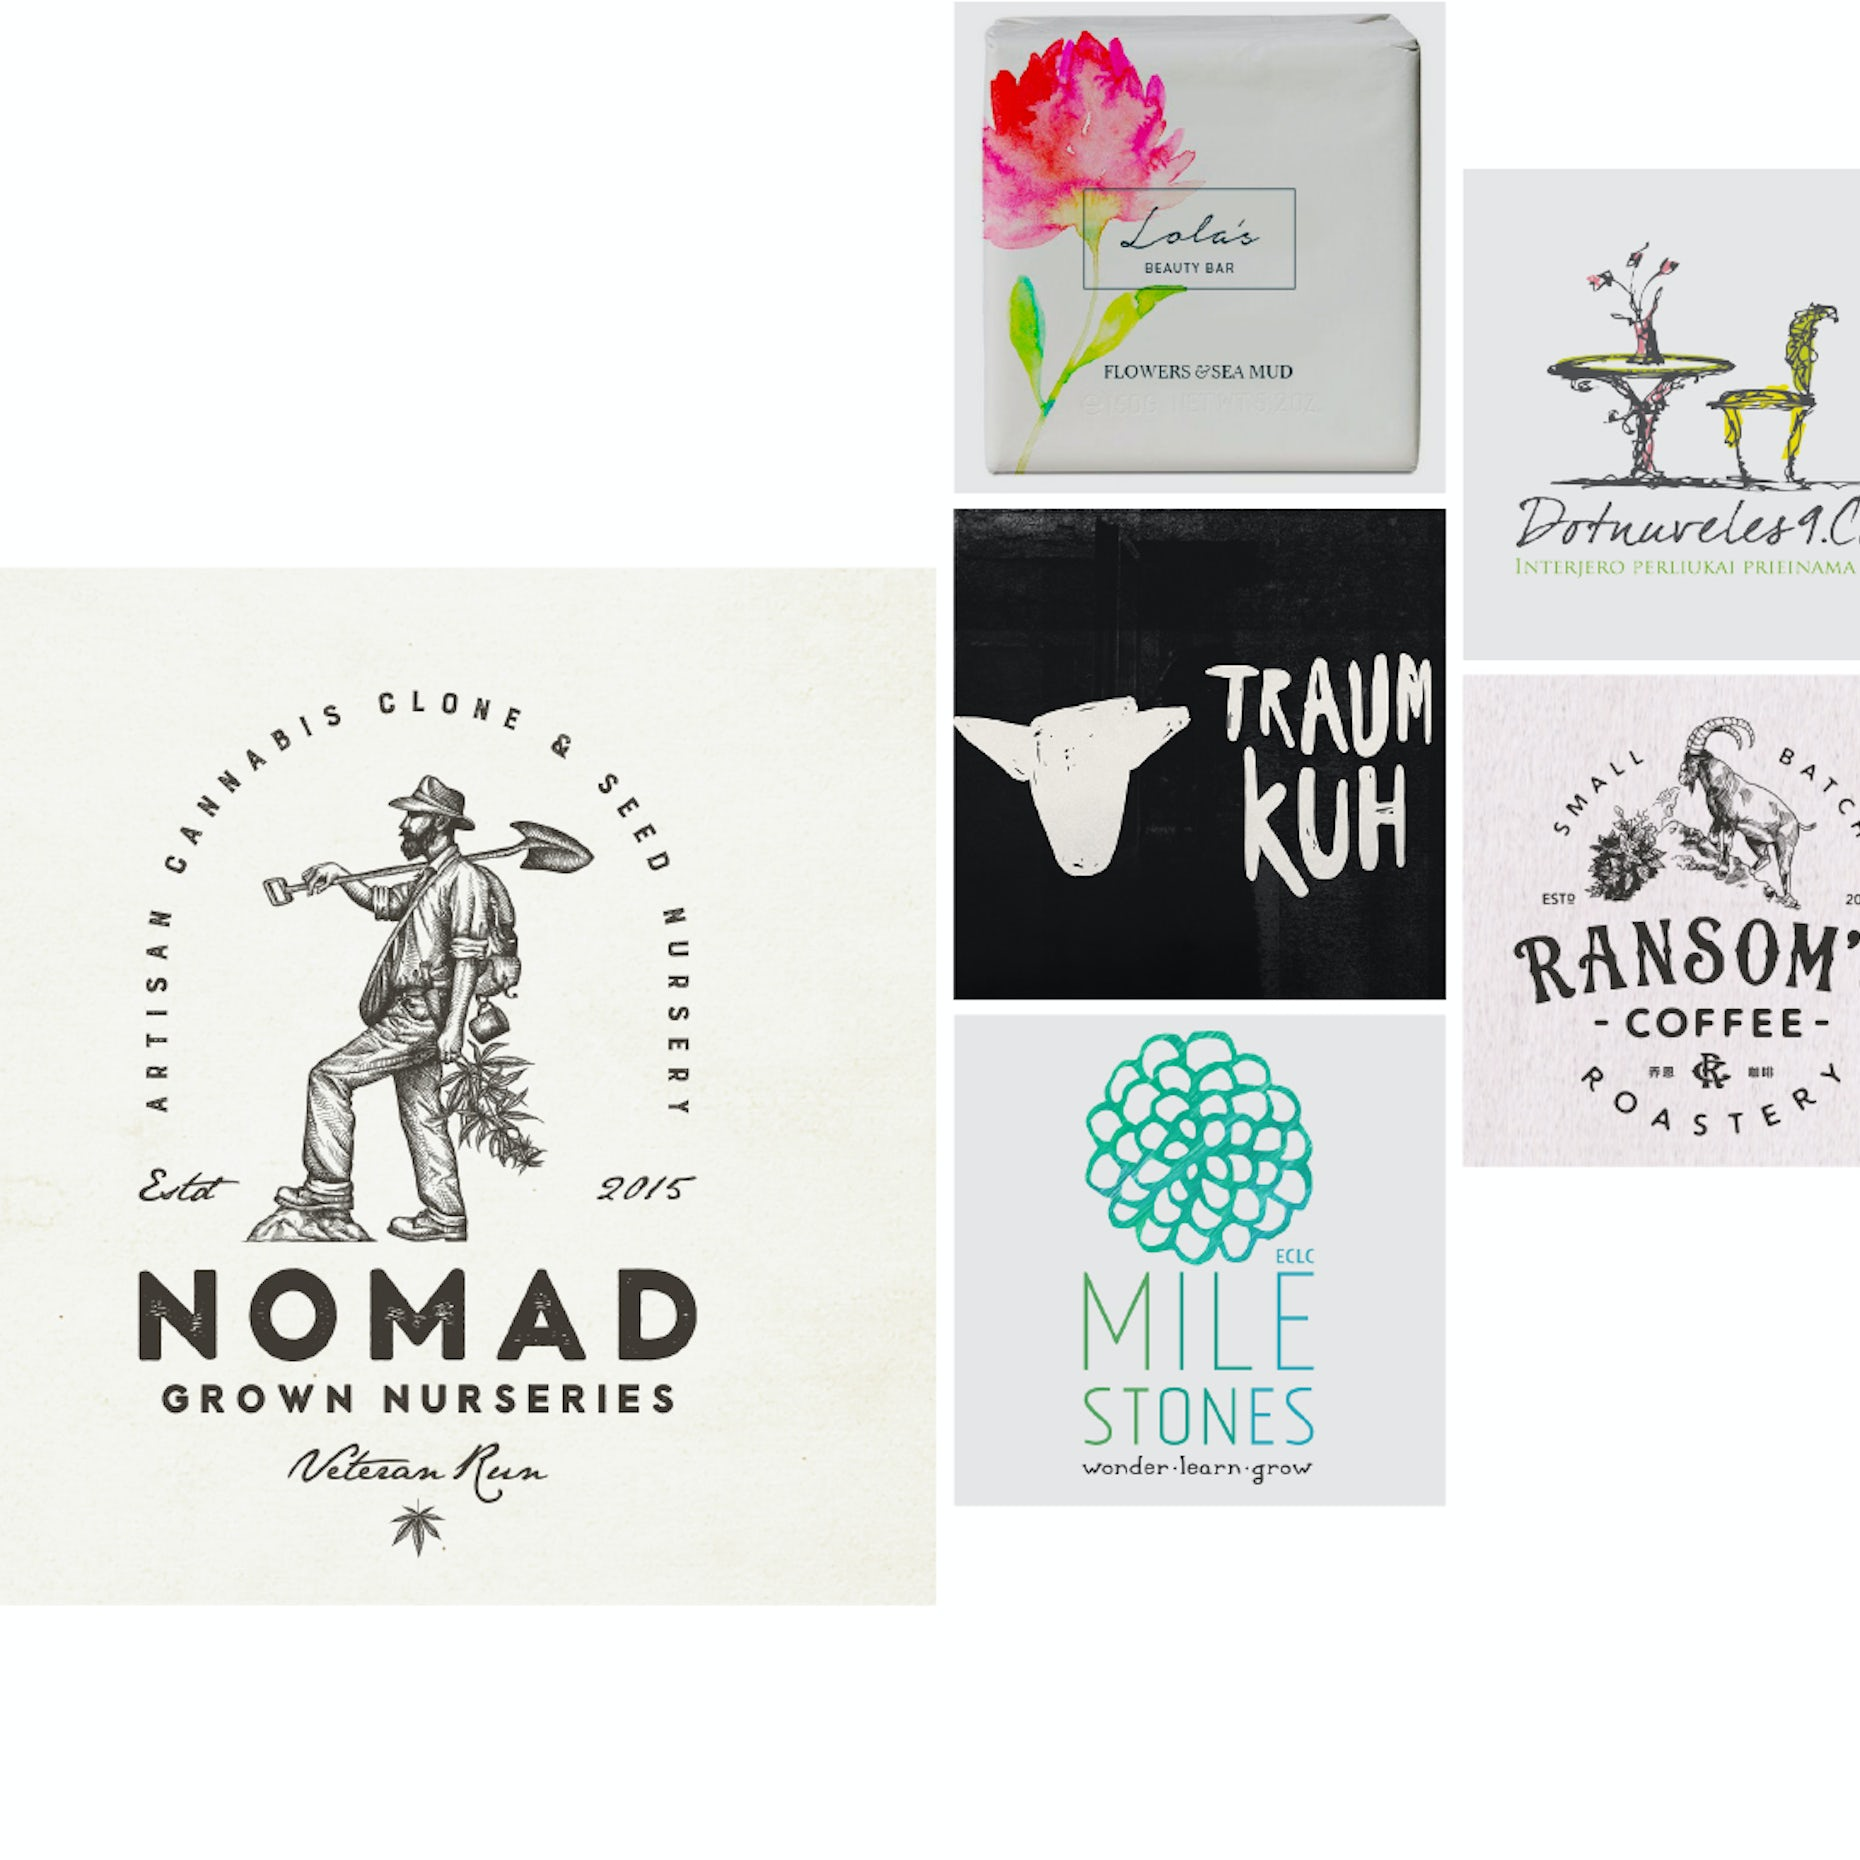 20 handmade and hand drawn logos that are simply unique   20designs